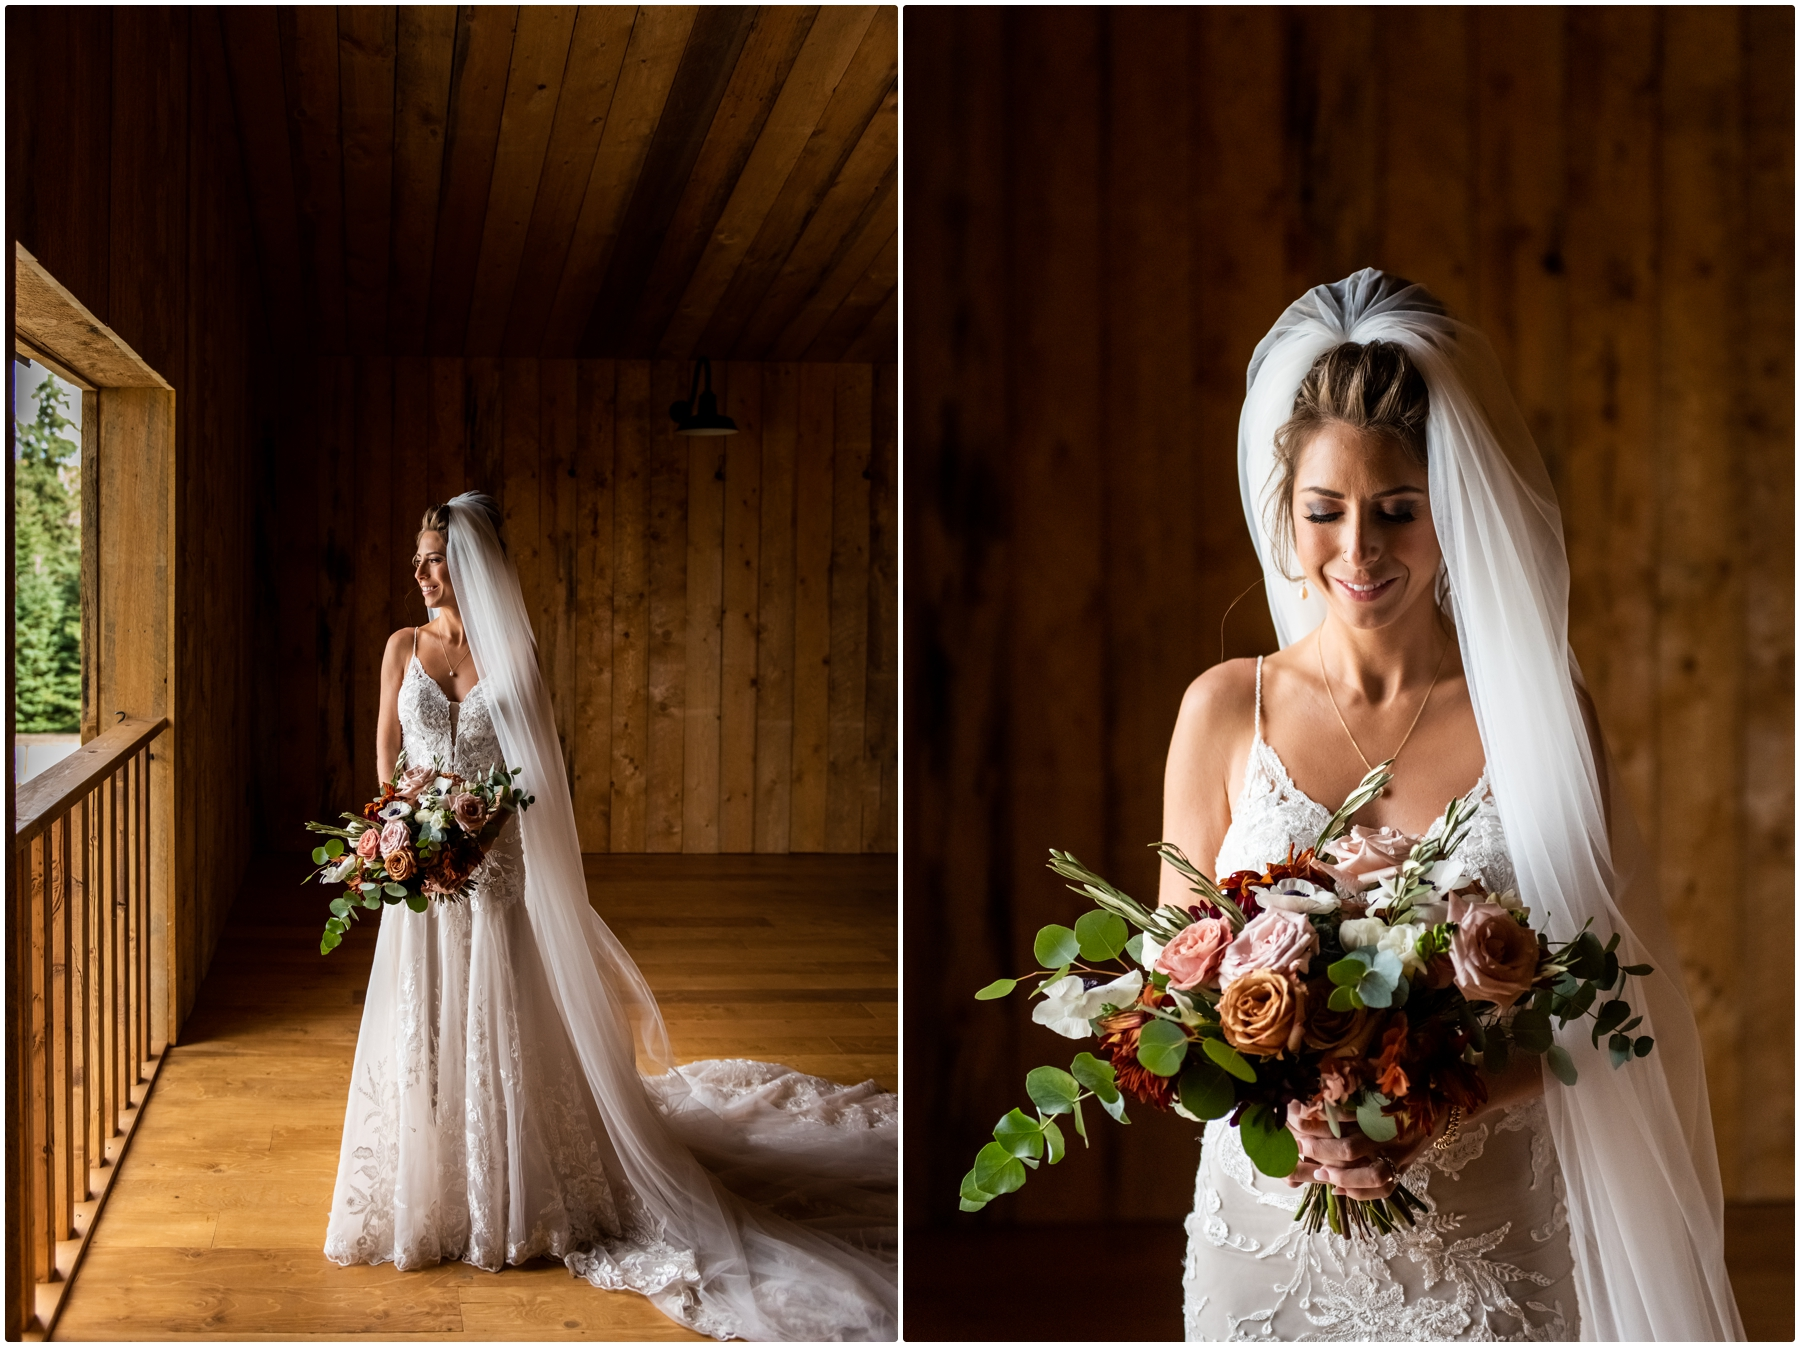 Bridal Photos - Sweet Haven Barn